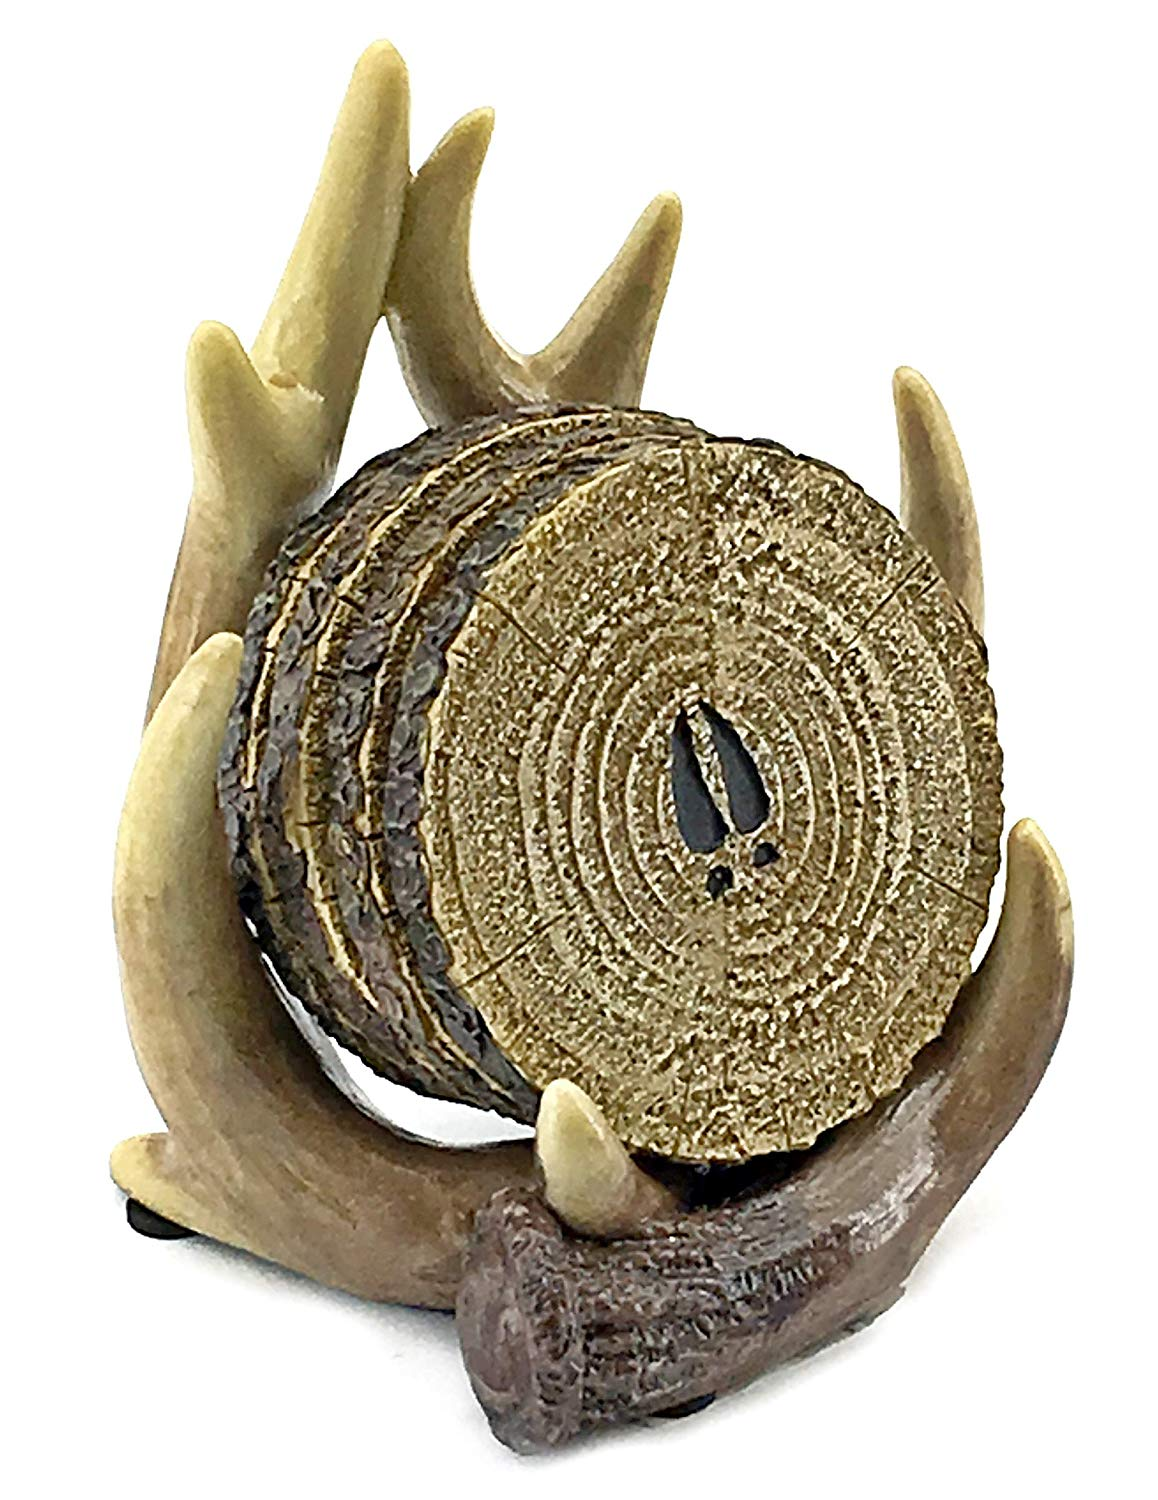 Bellaa 23295 Coasters Deer Antler Holder 4+1 Set Outdoors Rustic Cabin Theme Decor